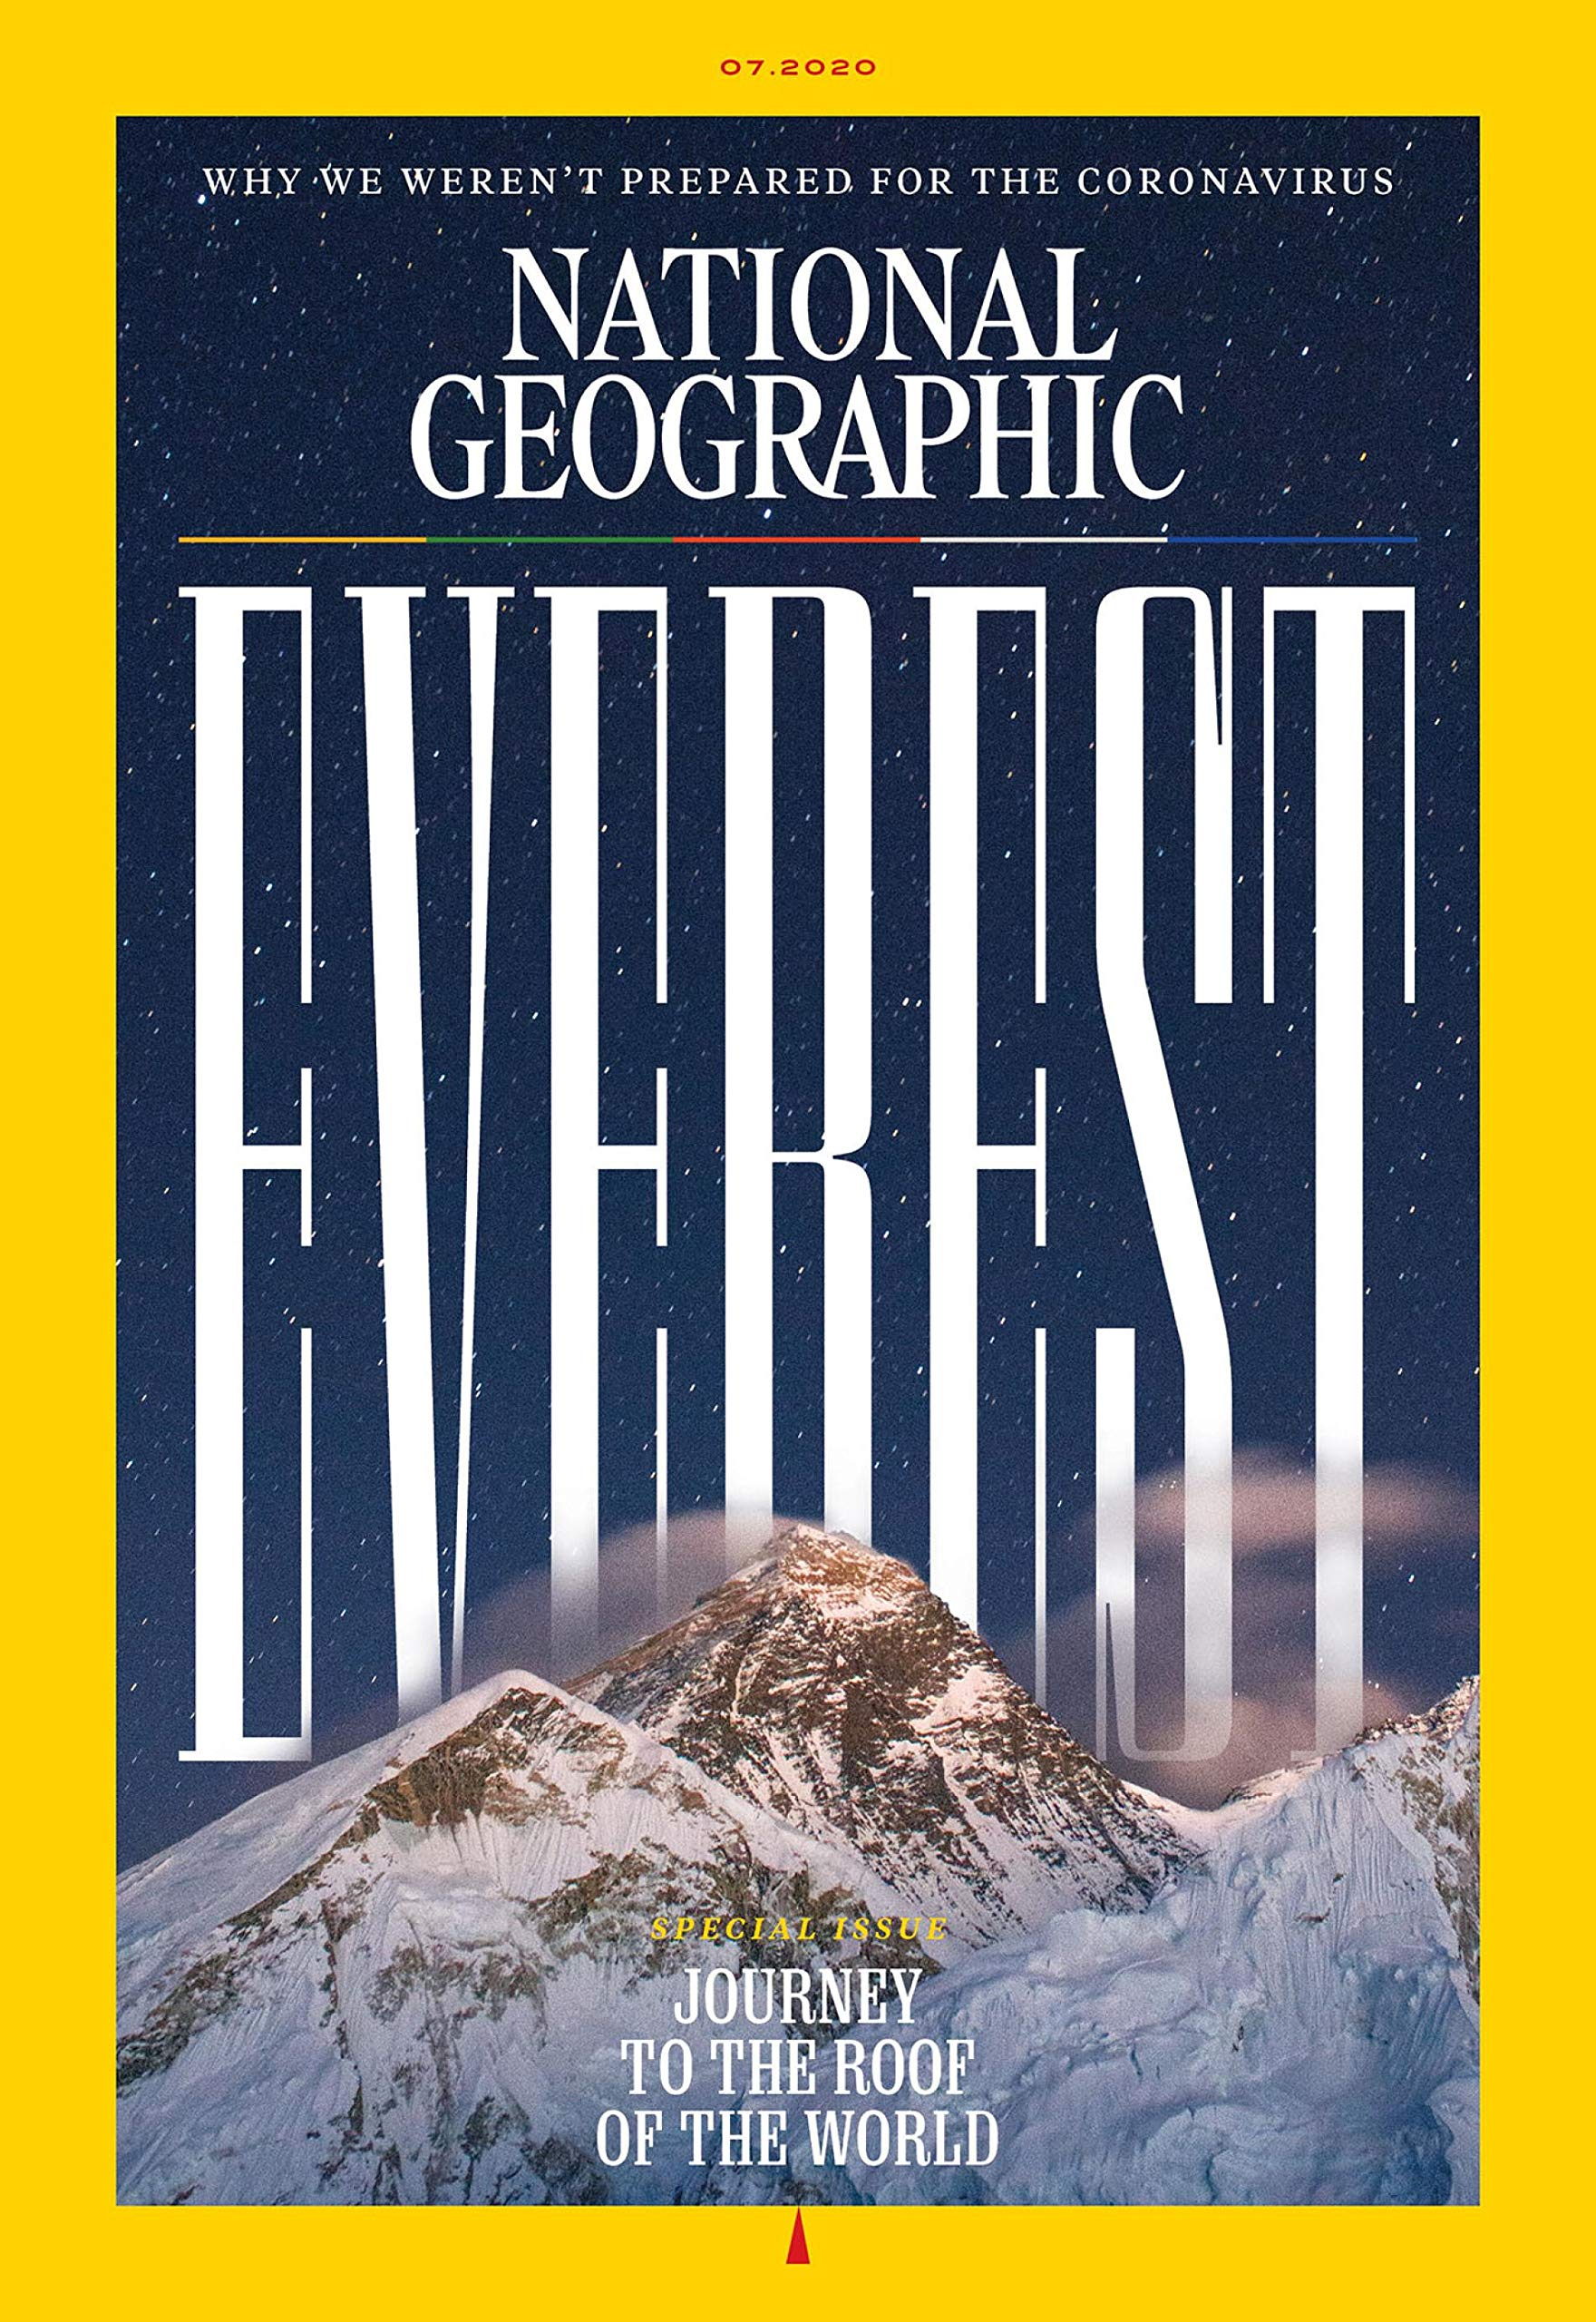 National Geography magazine cover